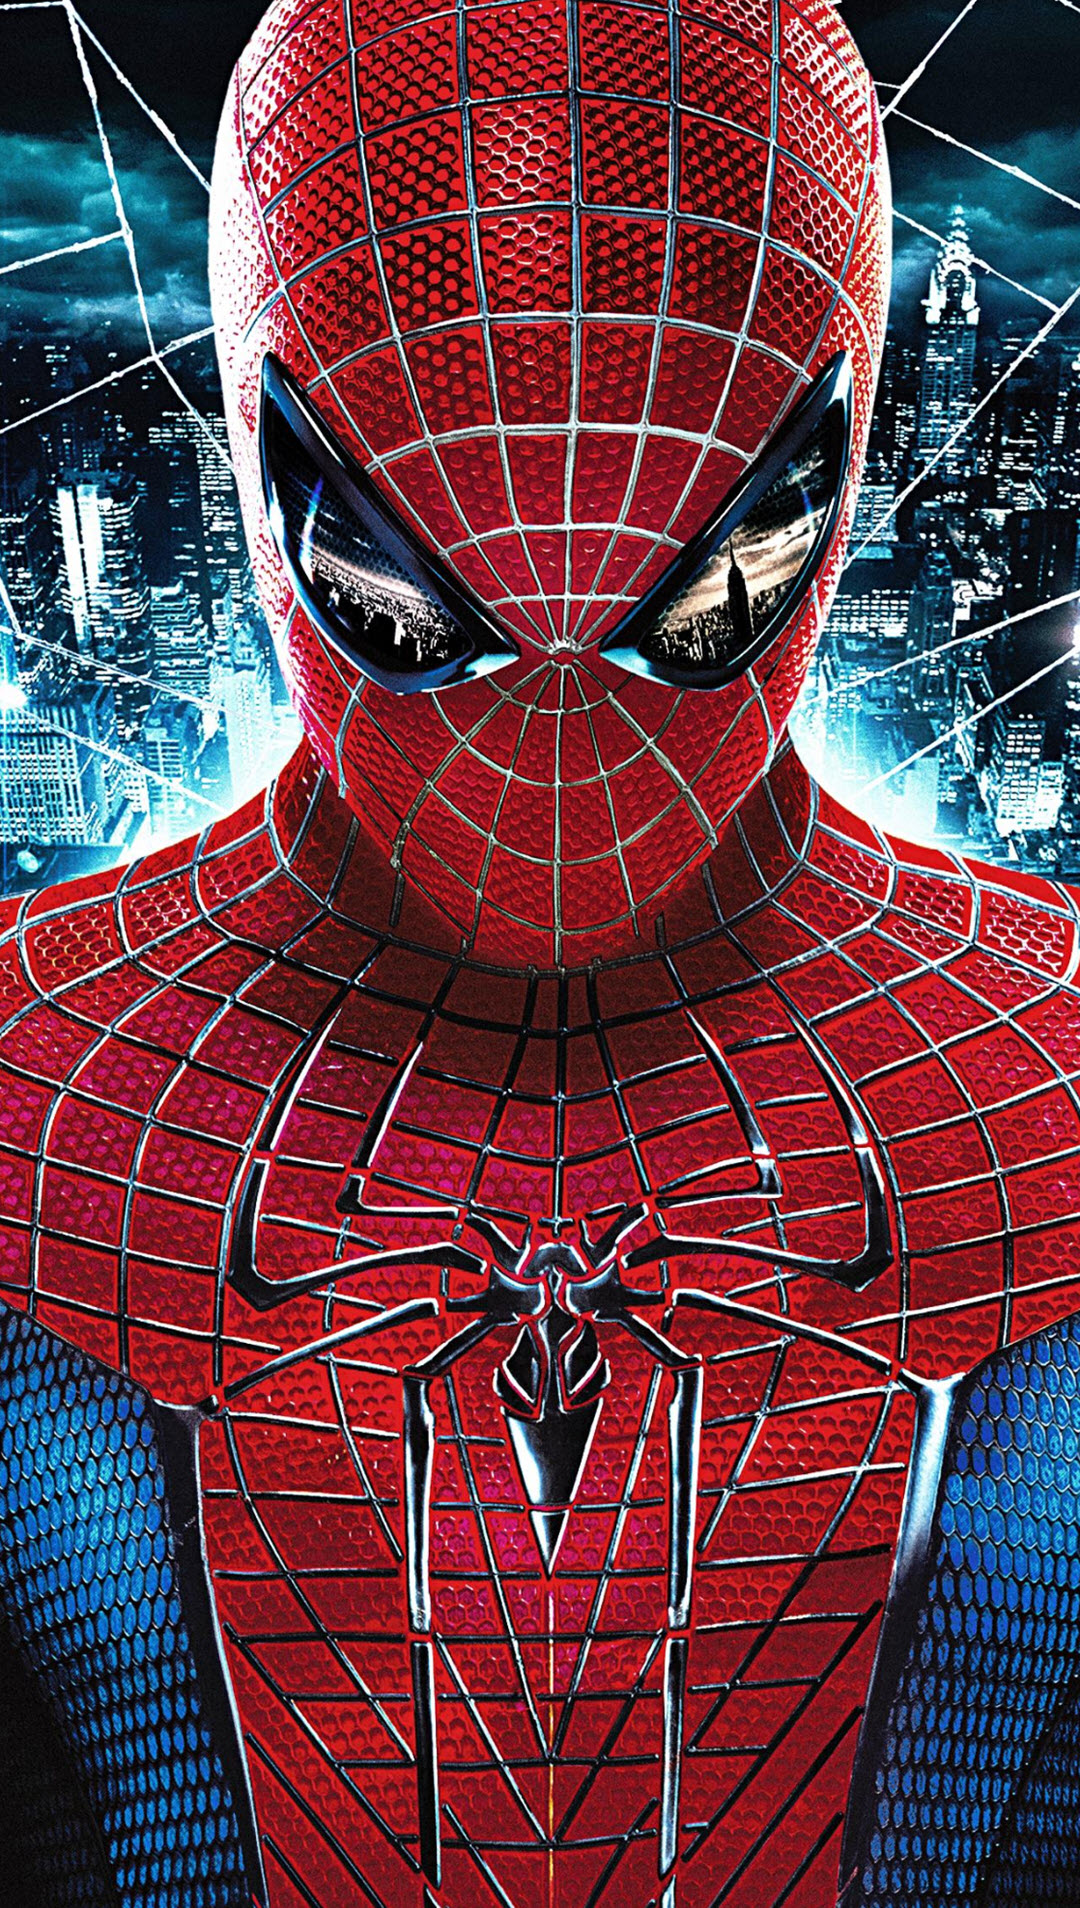 Top 15 Spider-Man wallpapers for iPhone every fan must check out